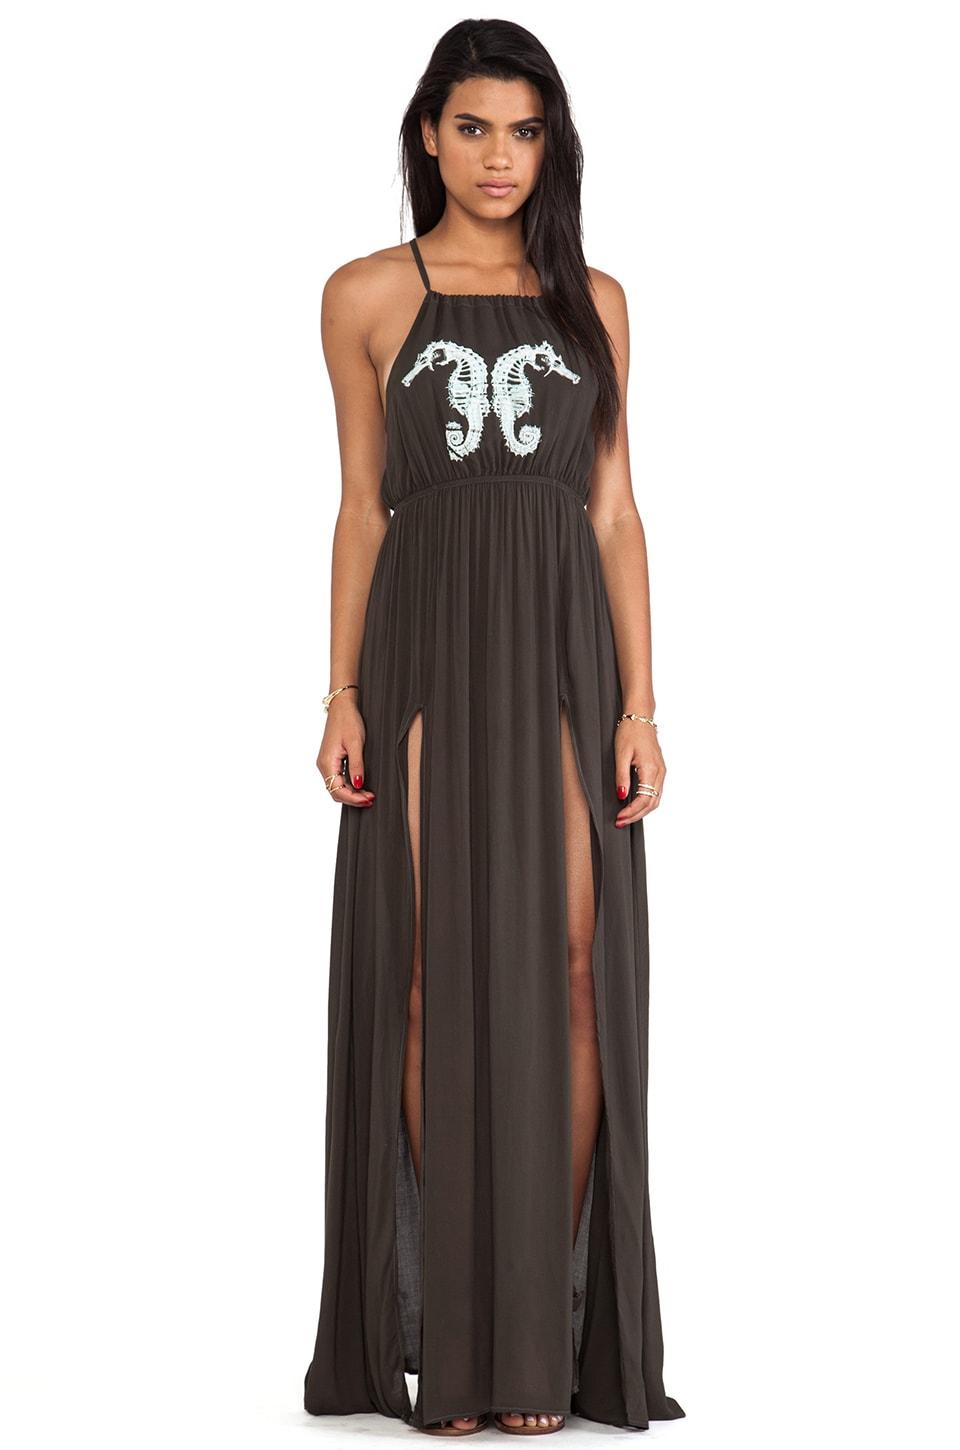 Wildfox Couture Seahorse Gigi Gown in Vintage Black